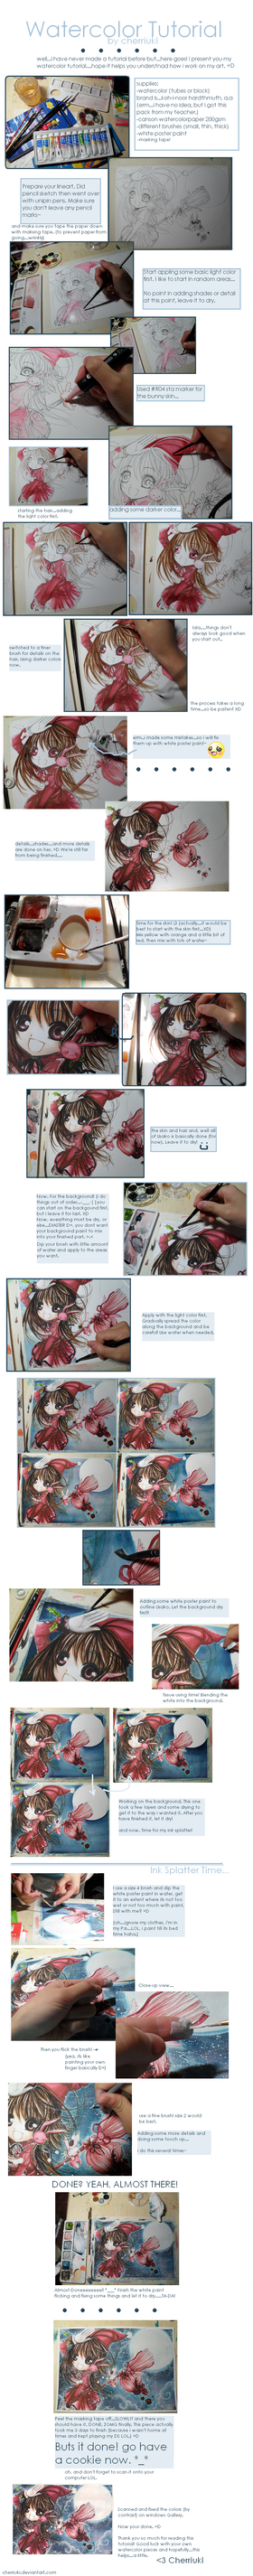 Watercolor Tutorial by cherriuki